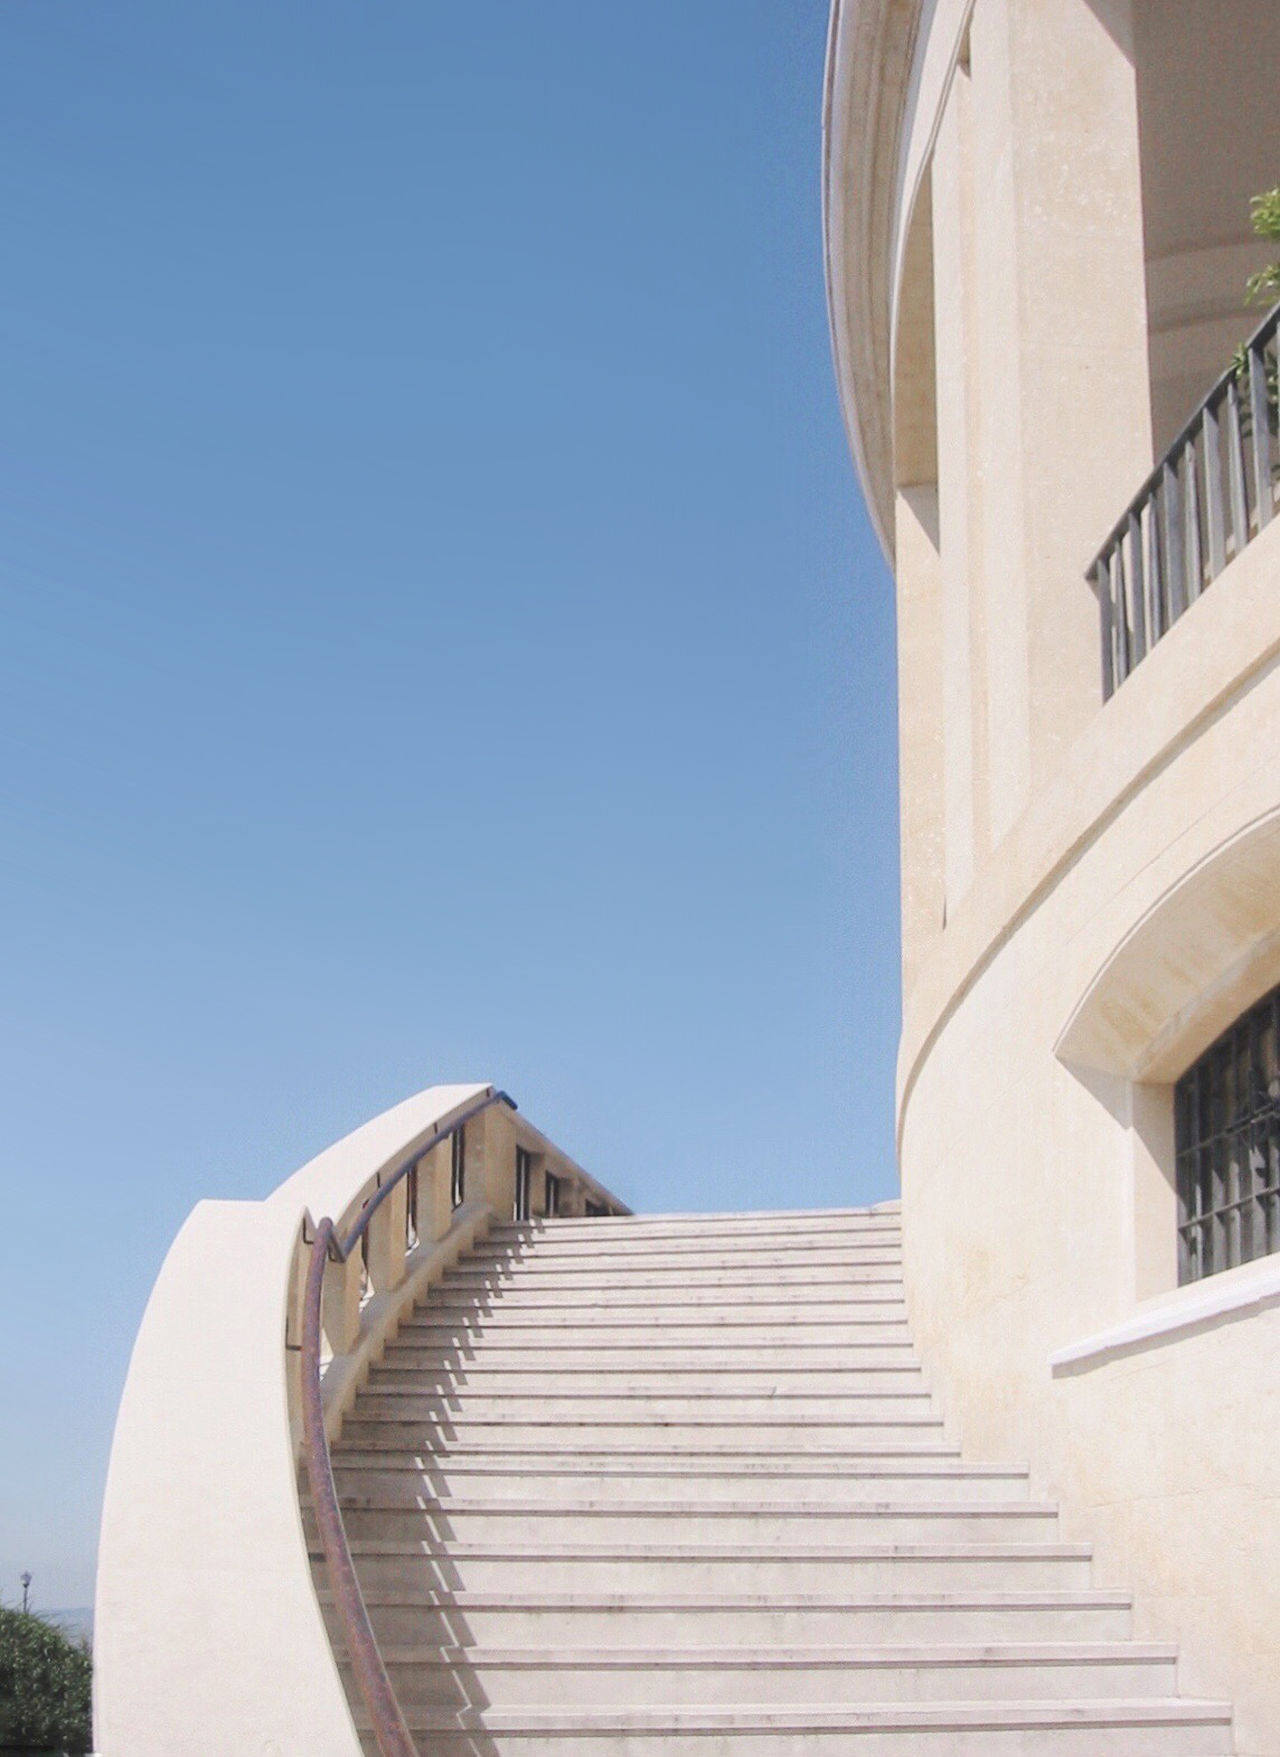 Architecture Blue Blue Sky Building Exterior Built Structure Clear Sky Day Fancy Low Angle View No People Outdoors Palace Rich Sky Staircase Stairs Steps Steps And Staircases Sunlight Villa EyeEm Selects